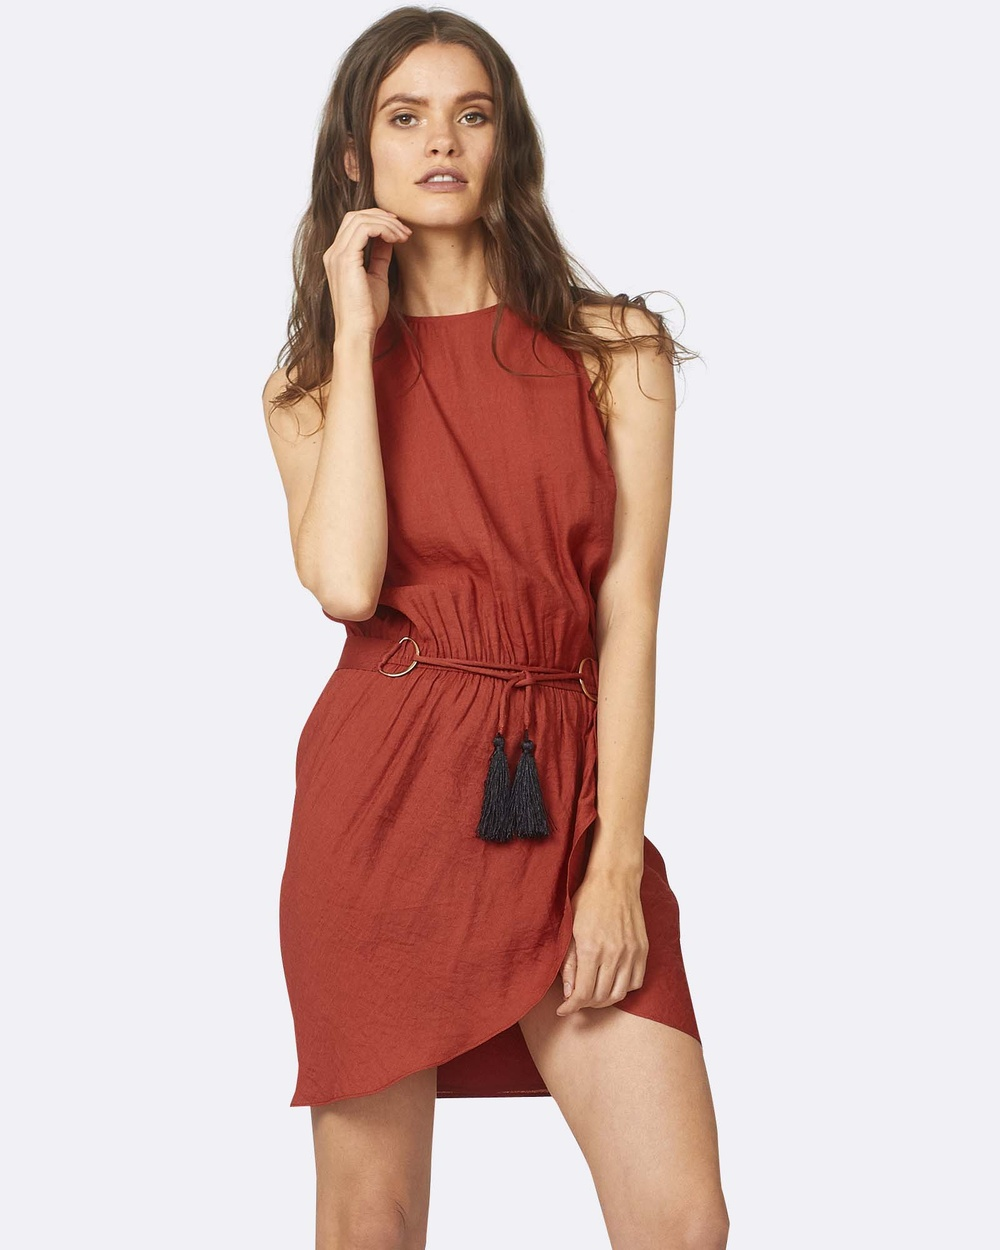 Three of Something Desert Dress Dresses Burgundy Desert Dress